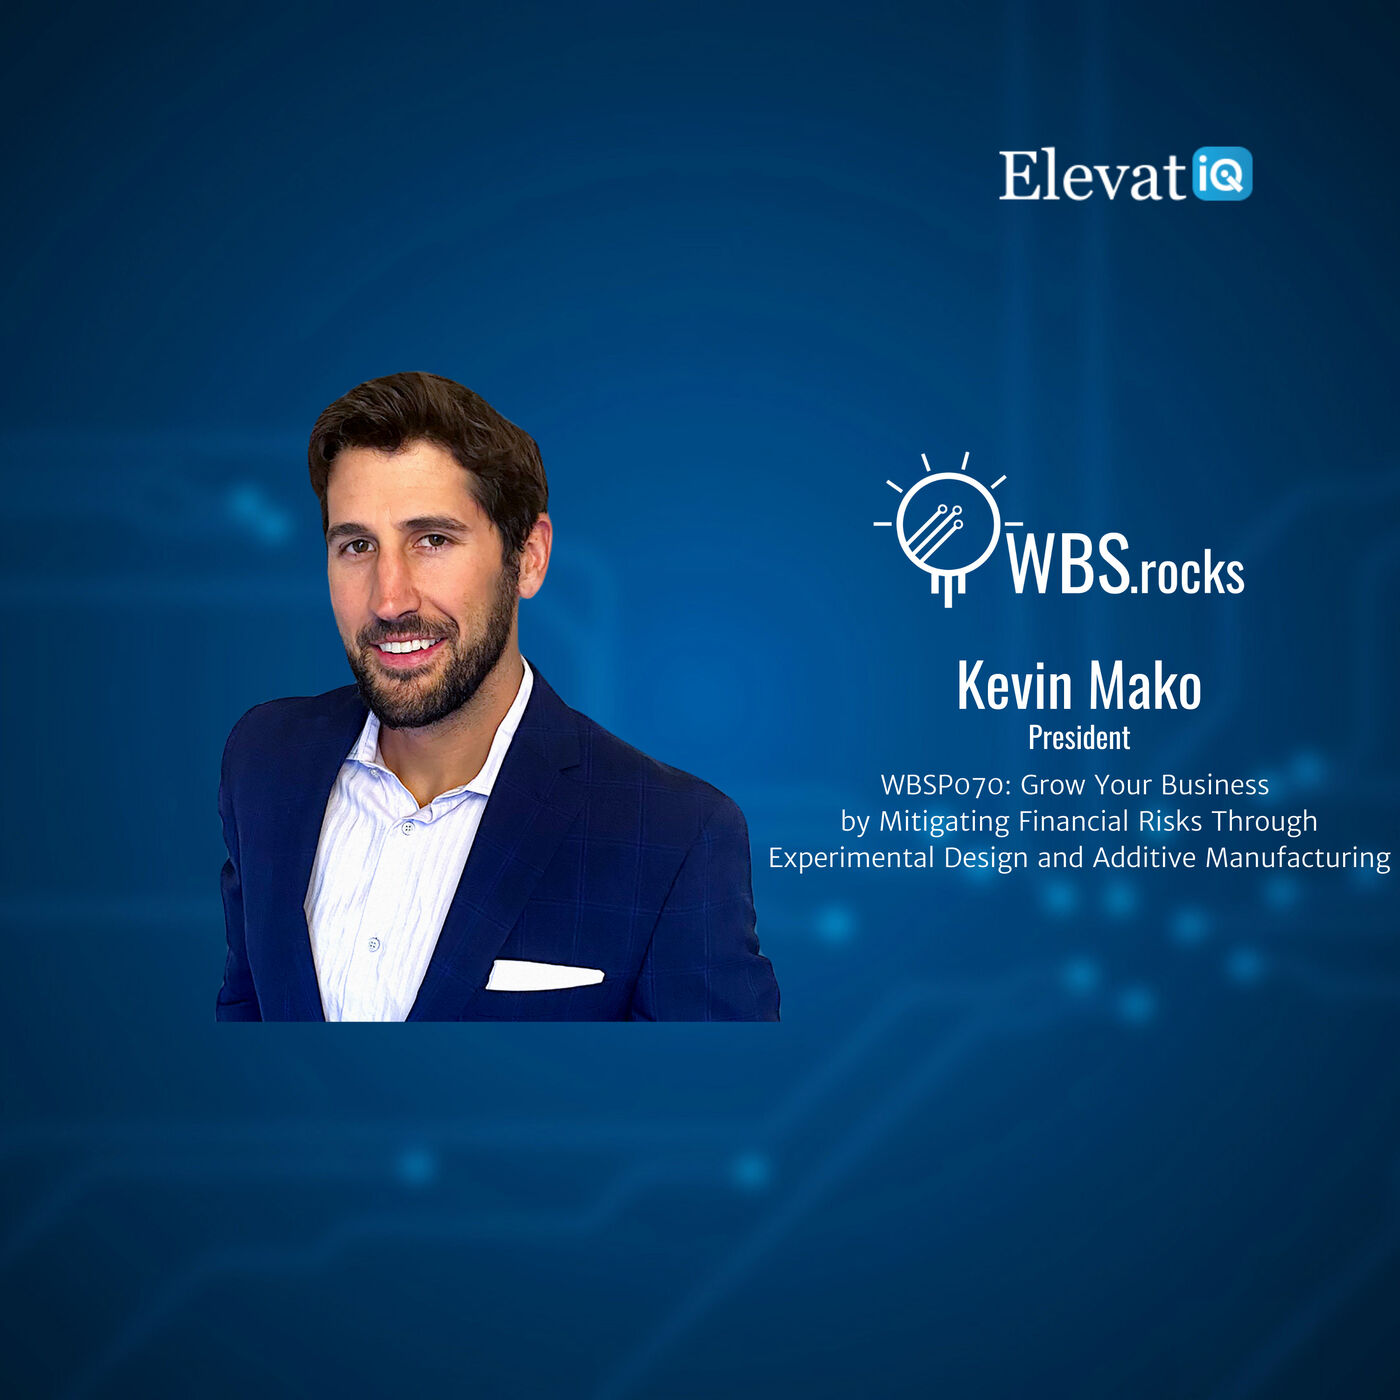 WBSP070: Grow Your Business by Mitigating Financial Risks Through Experimental Design and Additive Manufacturing w/ Kevin Mako